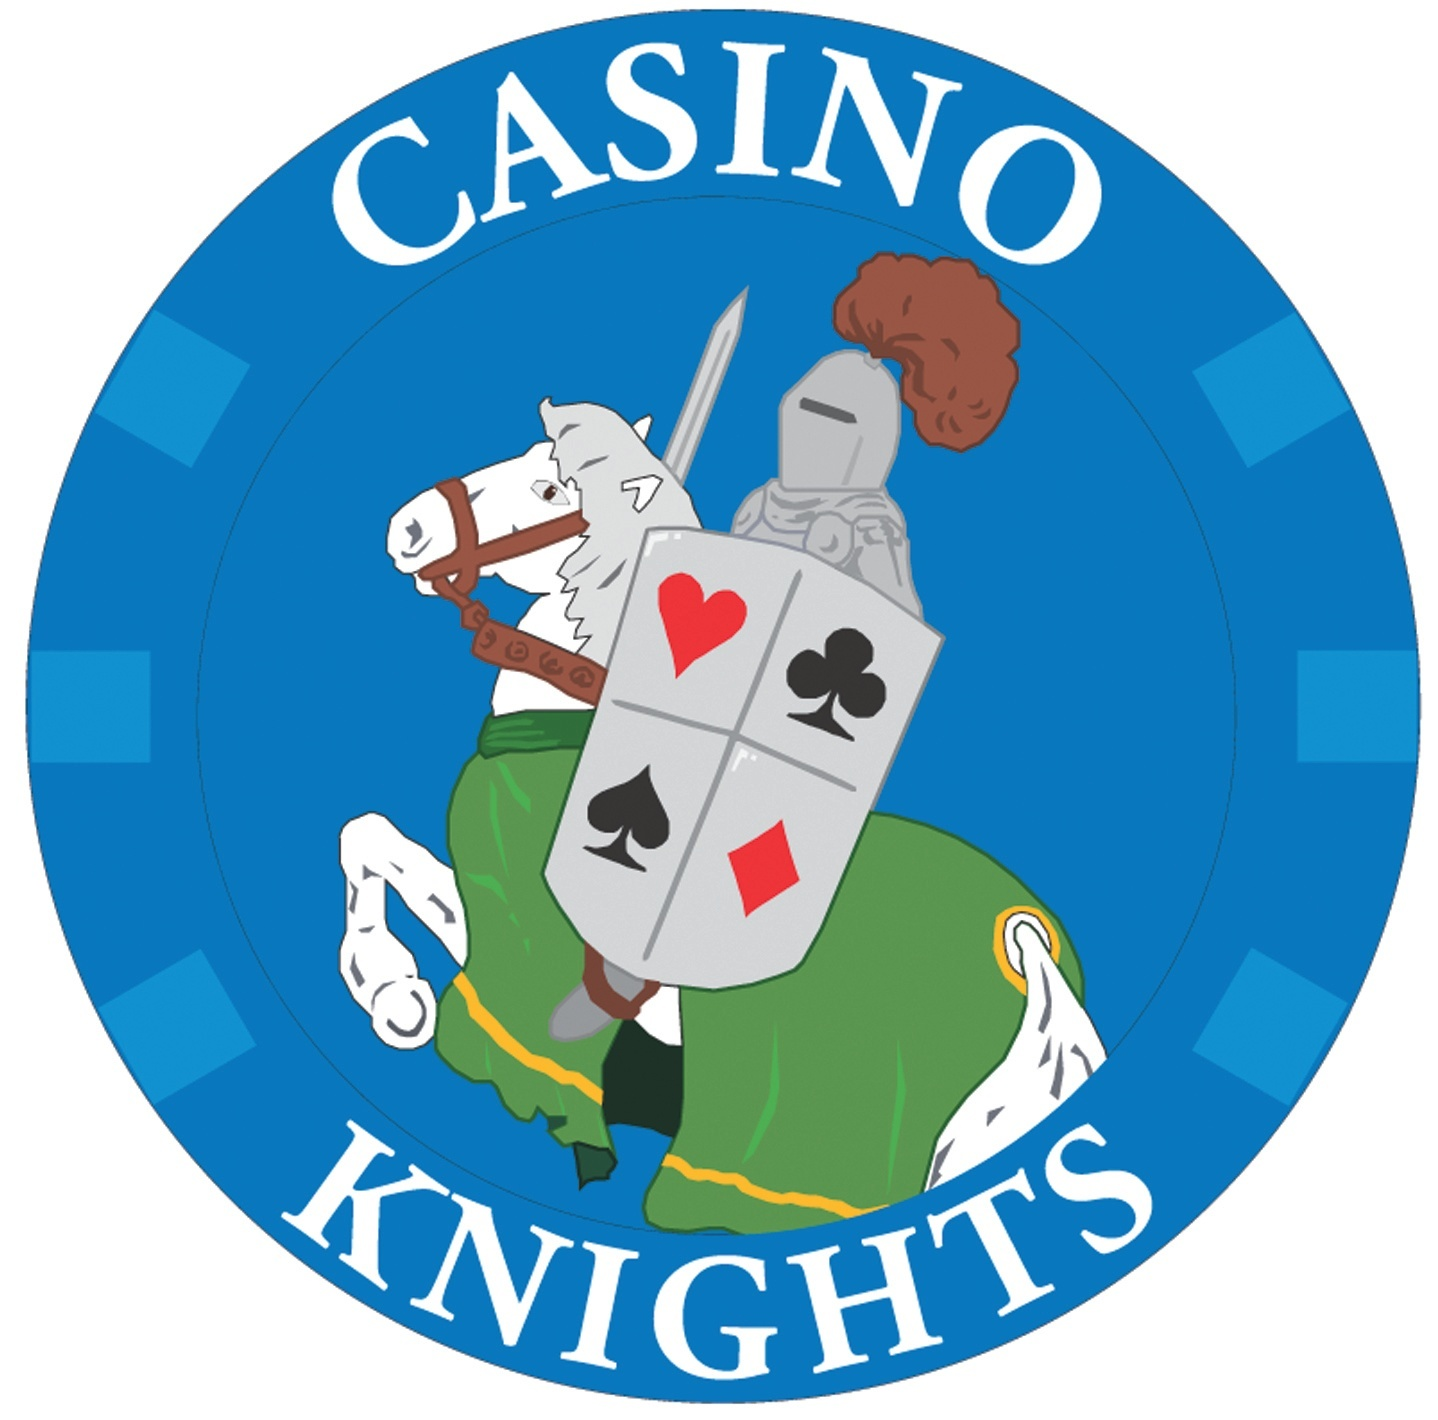 Casino Knights logo